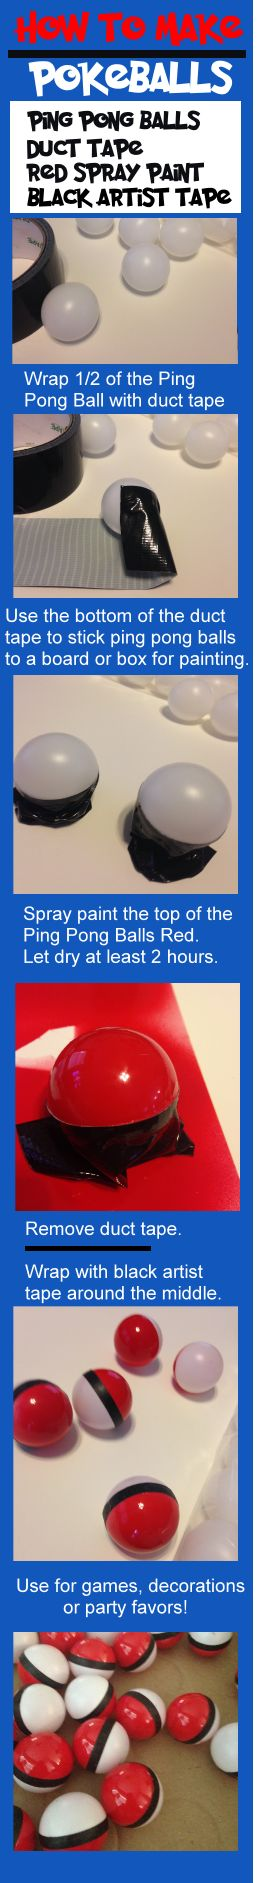 Easy to make Pokeballs for a Pokemon Go party!  DIY pokeballs are great for games, decorations and party favors!   Make these easy and cheap pokeballs with ping pong balls, spray paint and artist tape!  Step by step instructions.   For more fun ideas see http://www.birthdaypartyideas4kids.com #pokeball #poke #ball #diy #easy #pokemon #party #ideas #favors #games #decorations